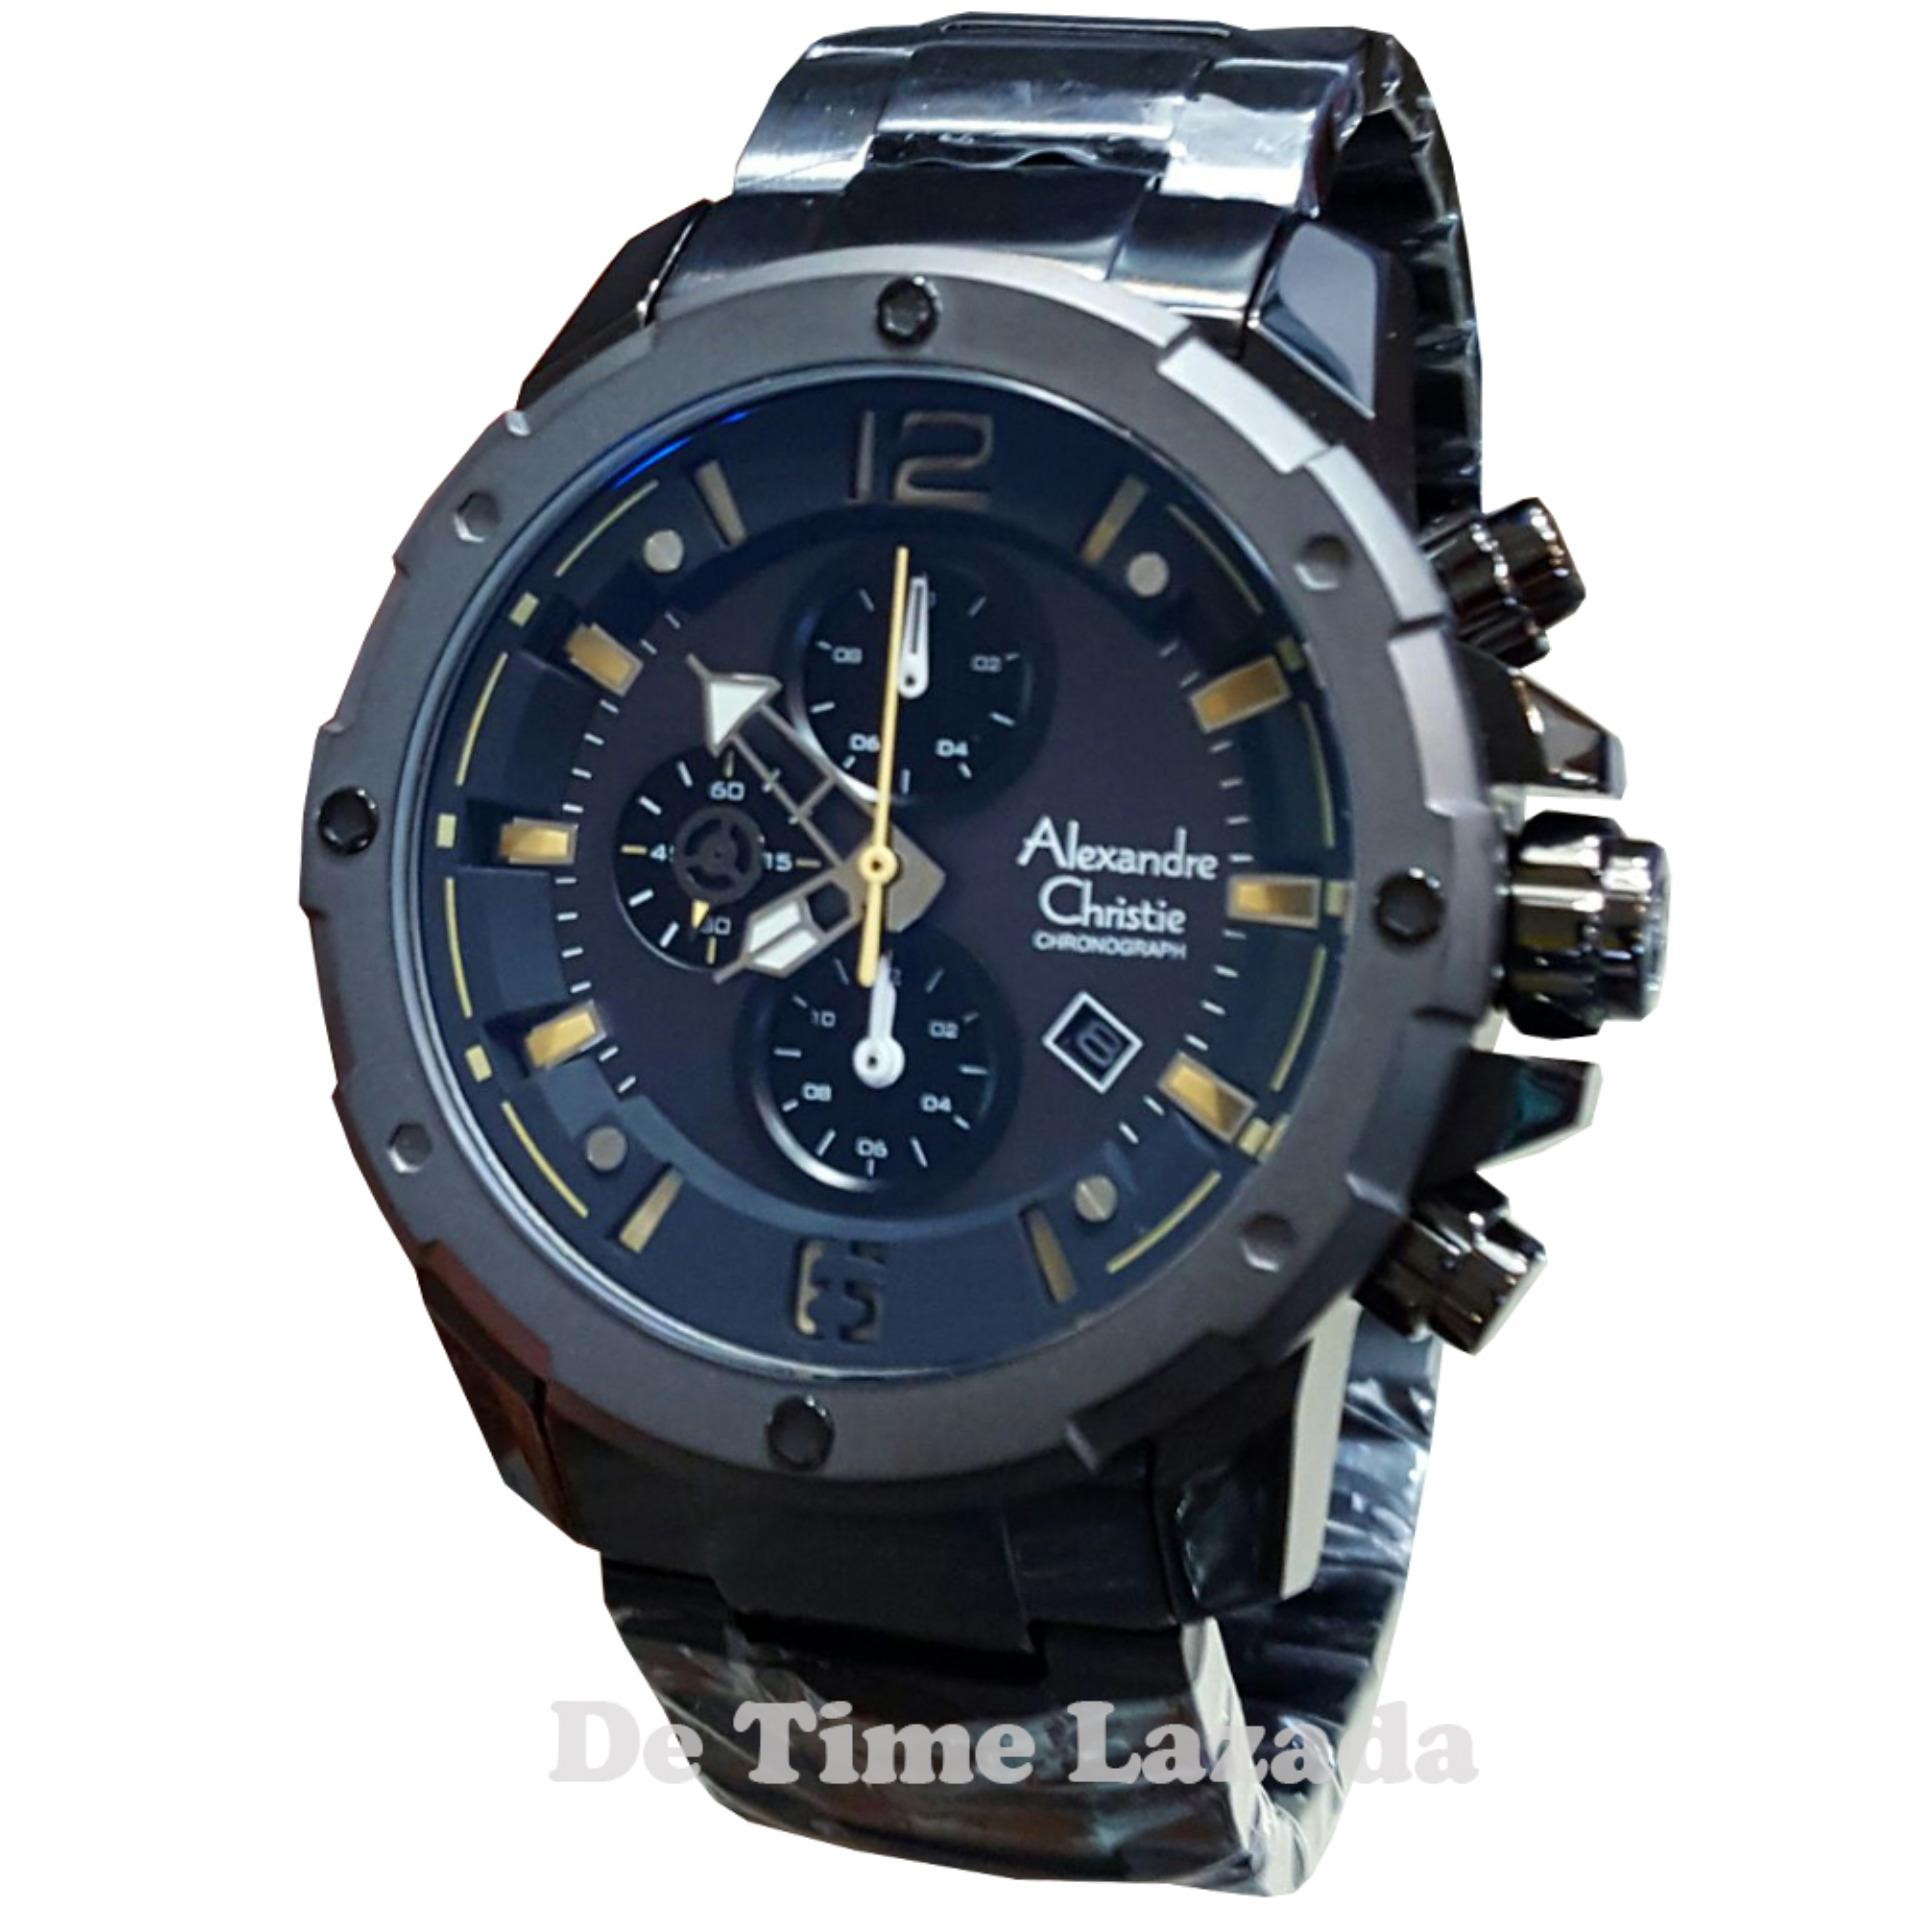 Alexandre Christie Ac6443mb Jam Tangan Pria Stainless Steel Hitam 6447 Silver Rose Gold Source Ac6410mb C